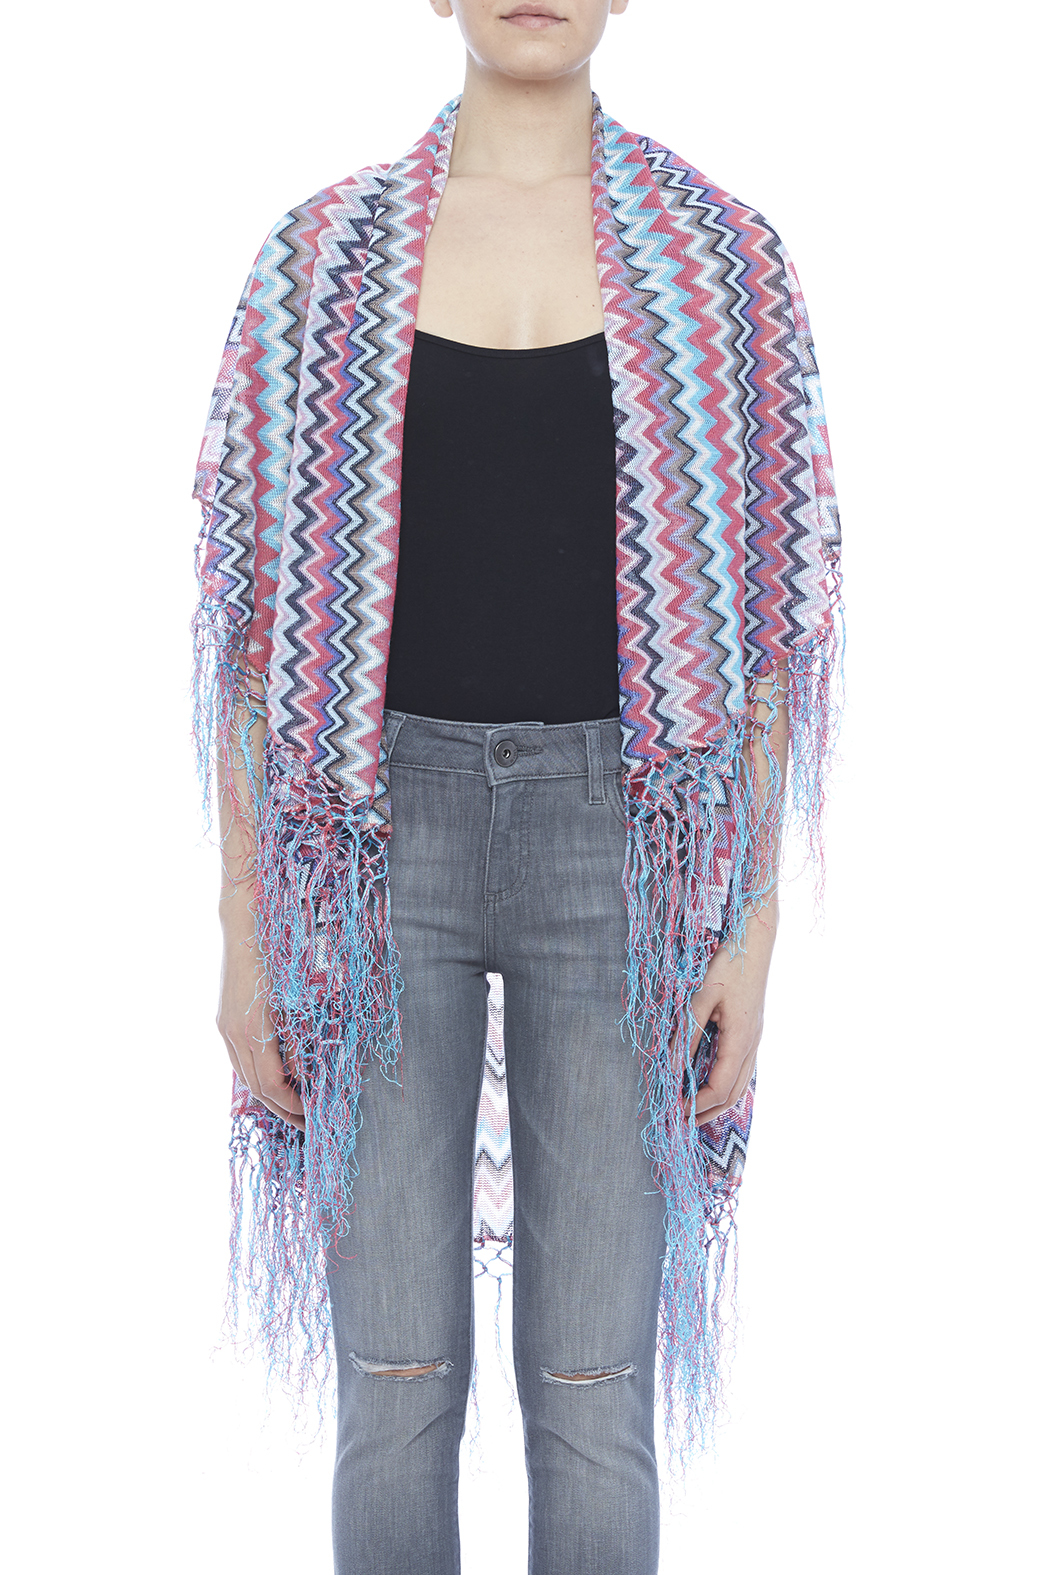 Raj Lotus Raj Cardigan Chevron Pattern - Side Cropped Image